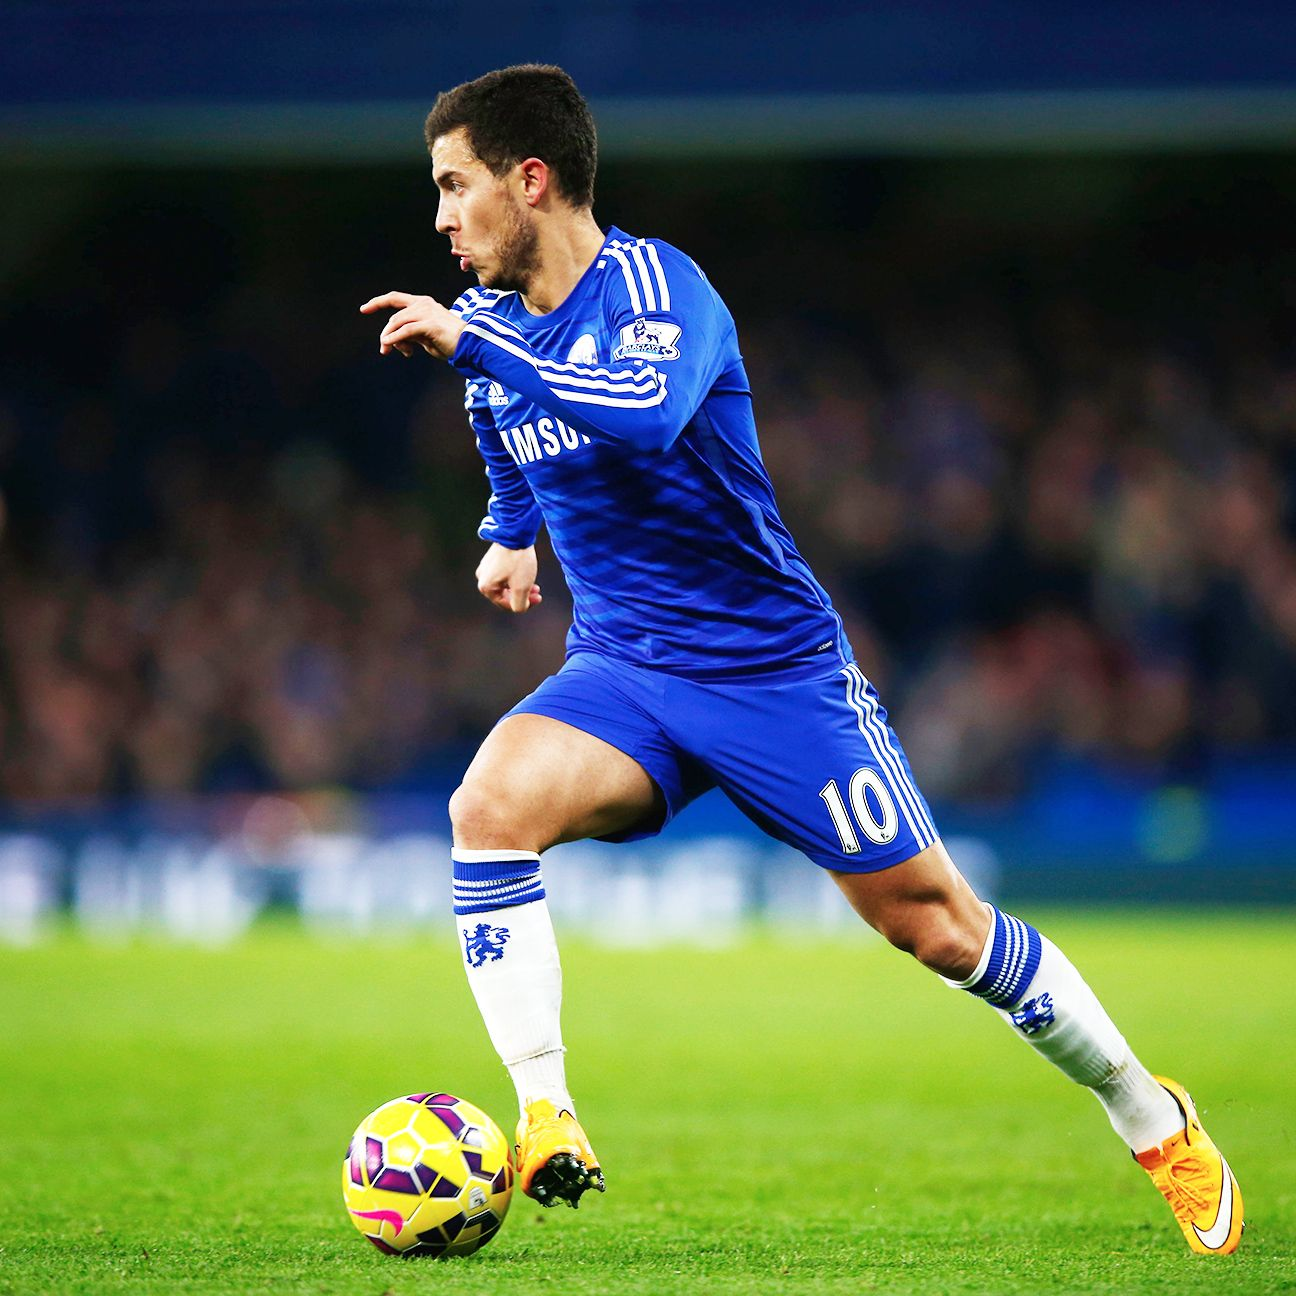 On a day where Chelsea were a bit flat, Eden Hazard provided the necessary attacking impetus.